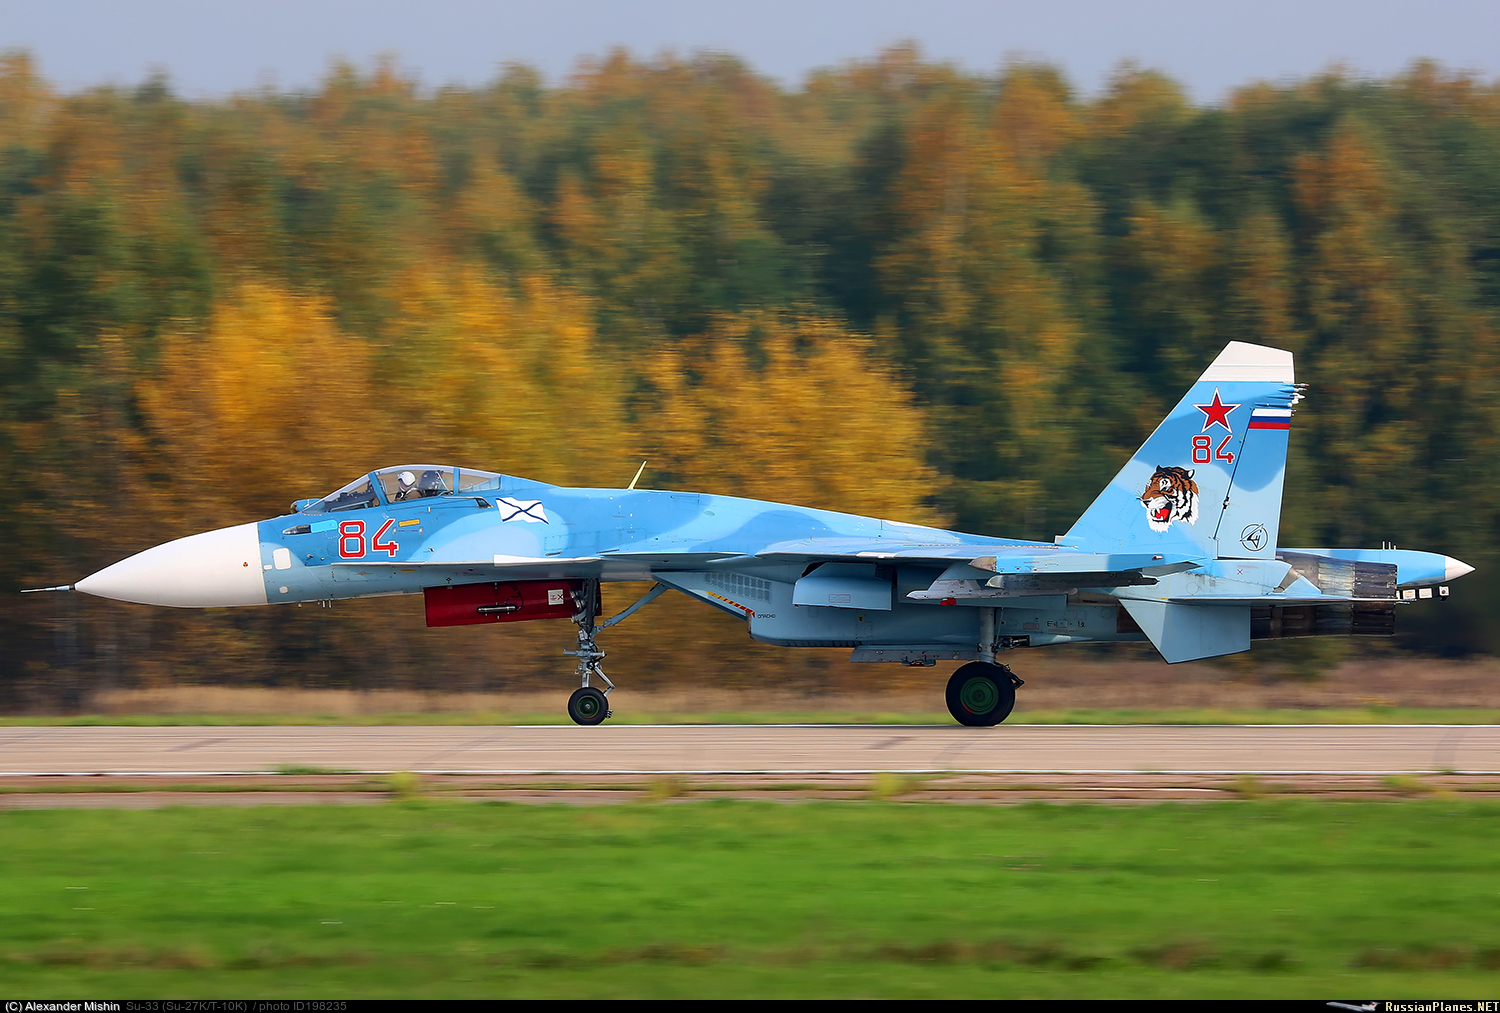 http://russianplanes.net/images/to199000/198235.jpg